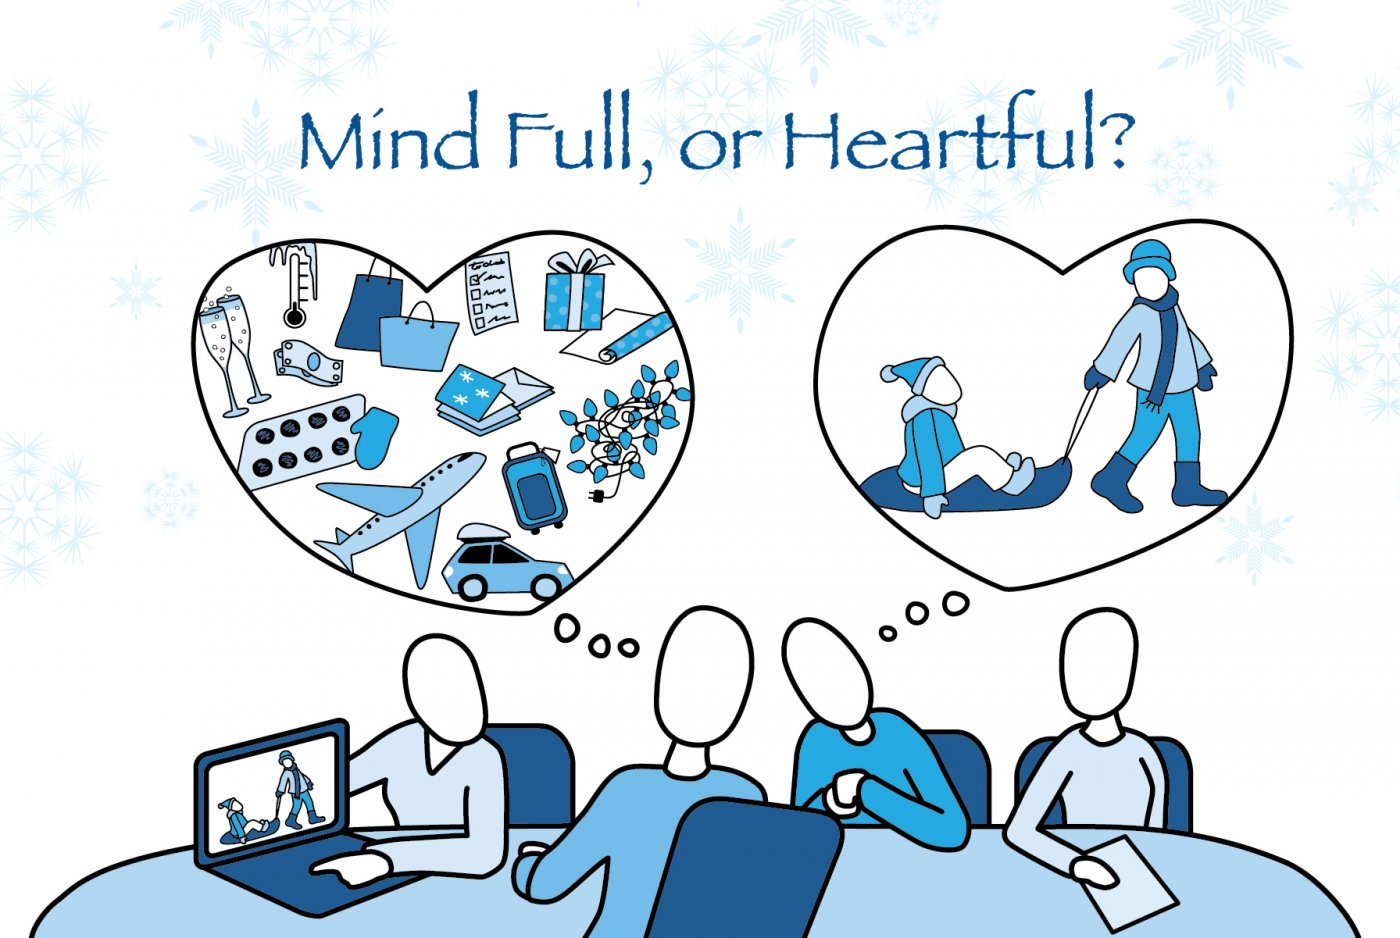 Mind Full or Mindful holiday mindfulness illustration